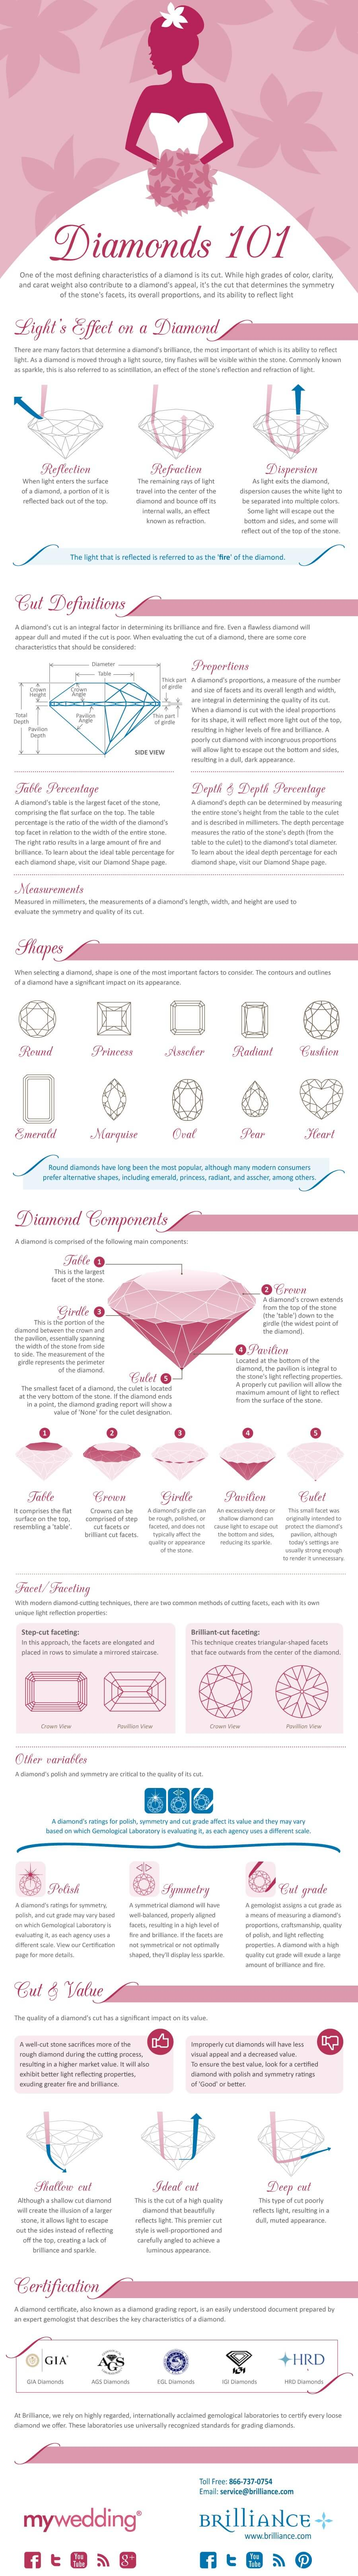 Diamonds 101 Infograph